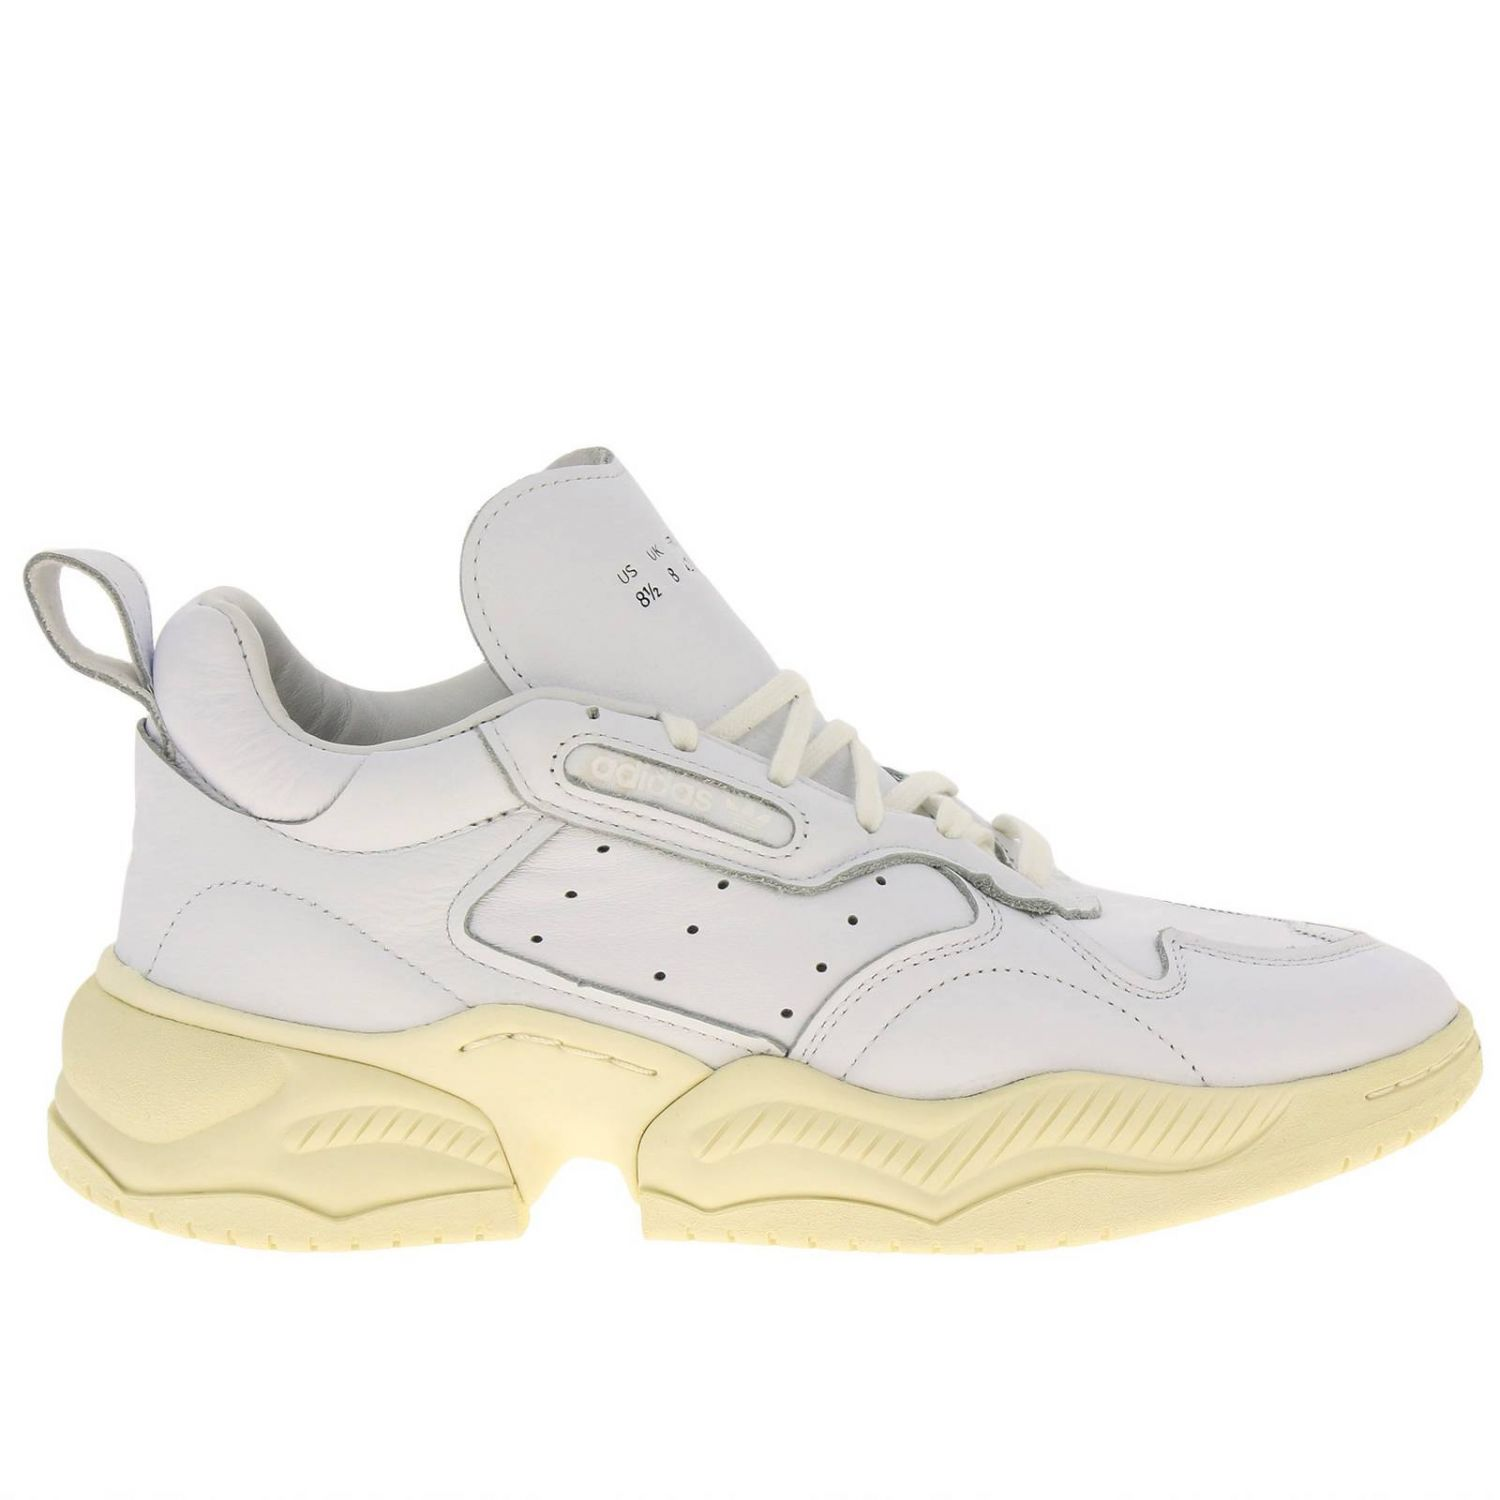 Trainers Adidas Originals: Shoes men Adidas Originals white 1